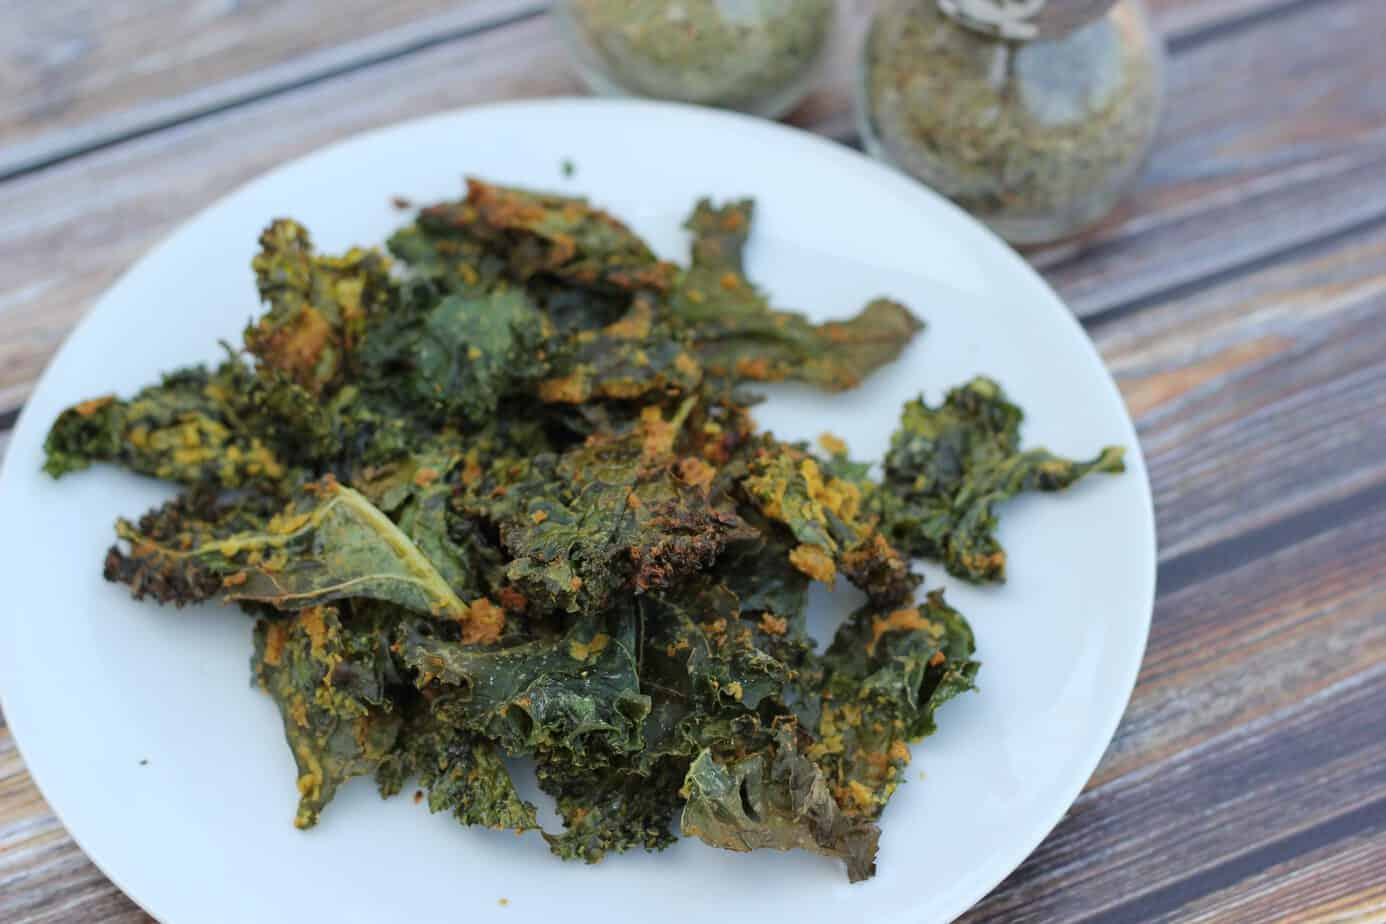 In preparation for some healthy snacking, I made some kale chips ...